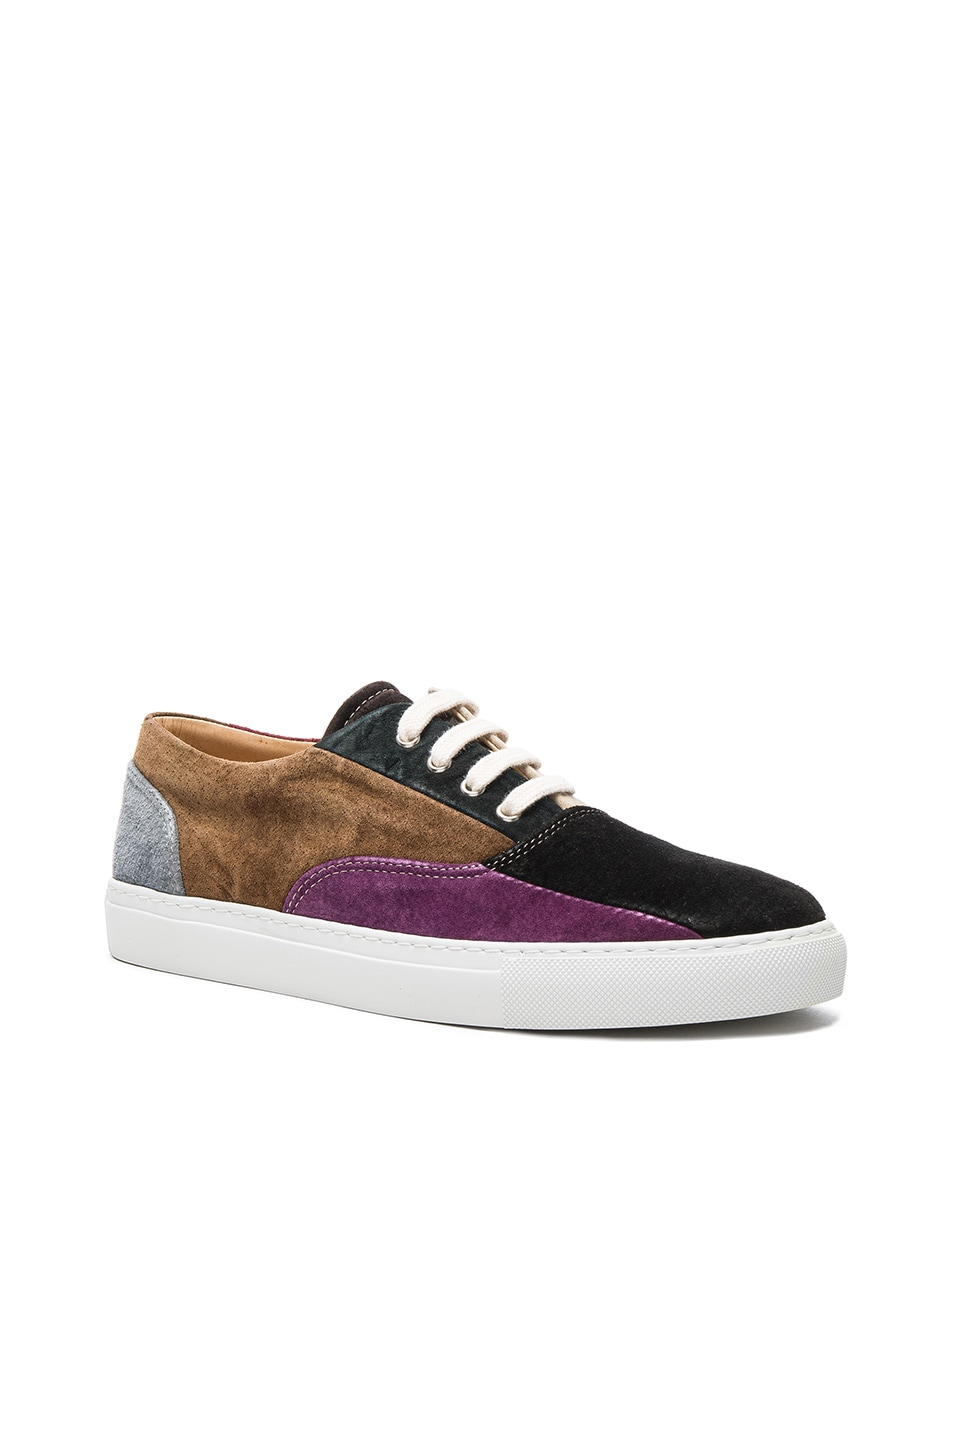 Comme des Gar?onsCheckered panelled sneakers 978LP7N